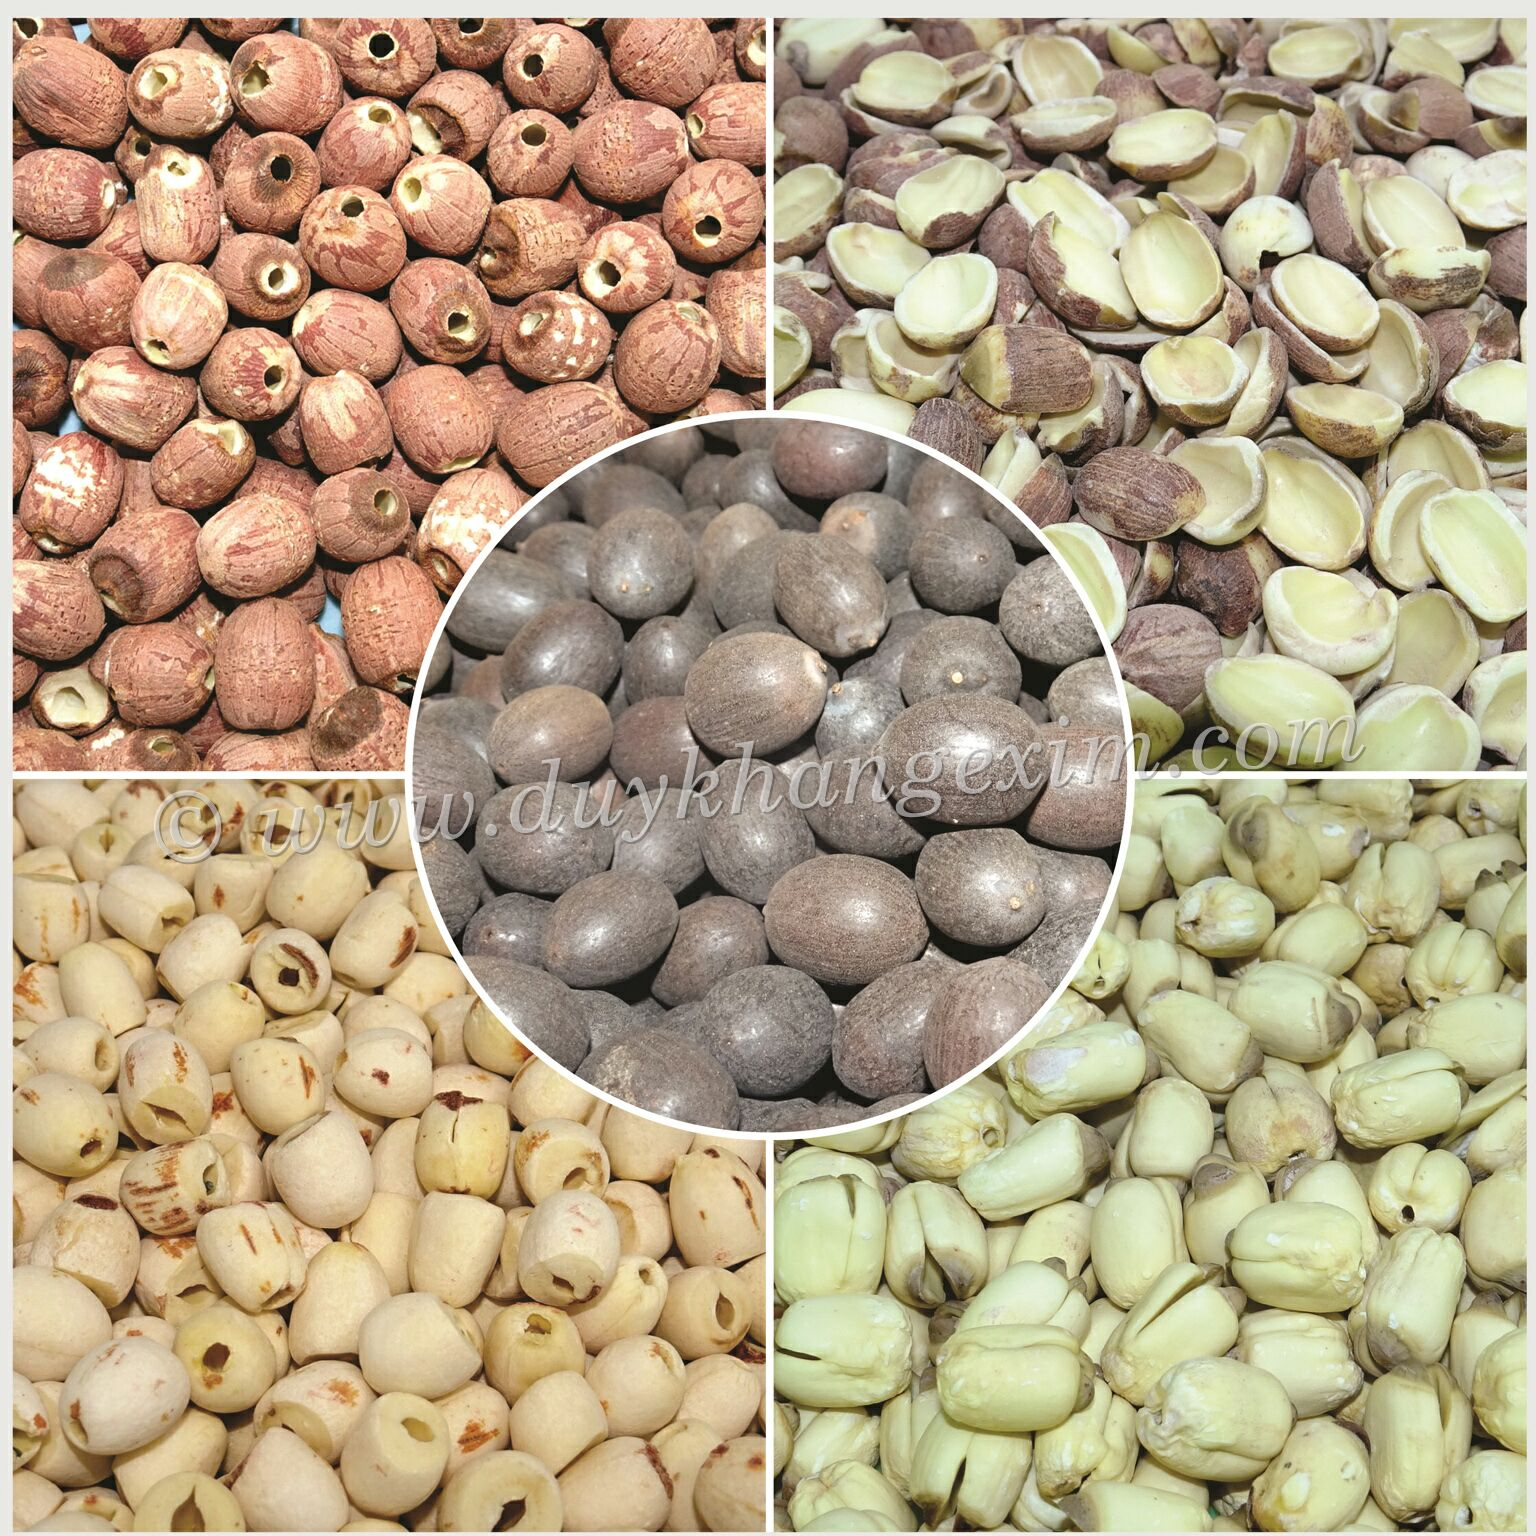 OFFER ALL TYPES OF DRIED LOTUS SEEDS